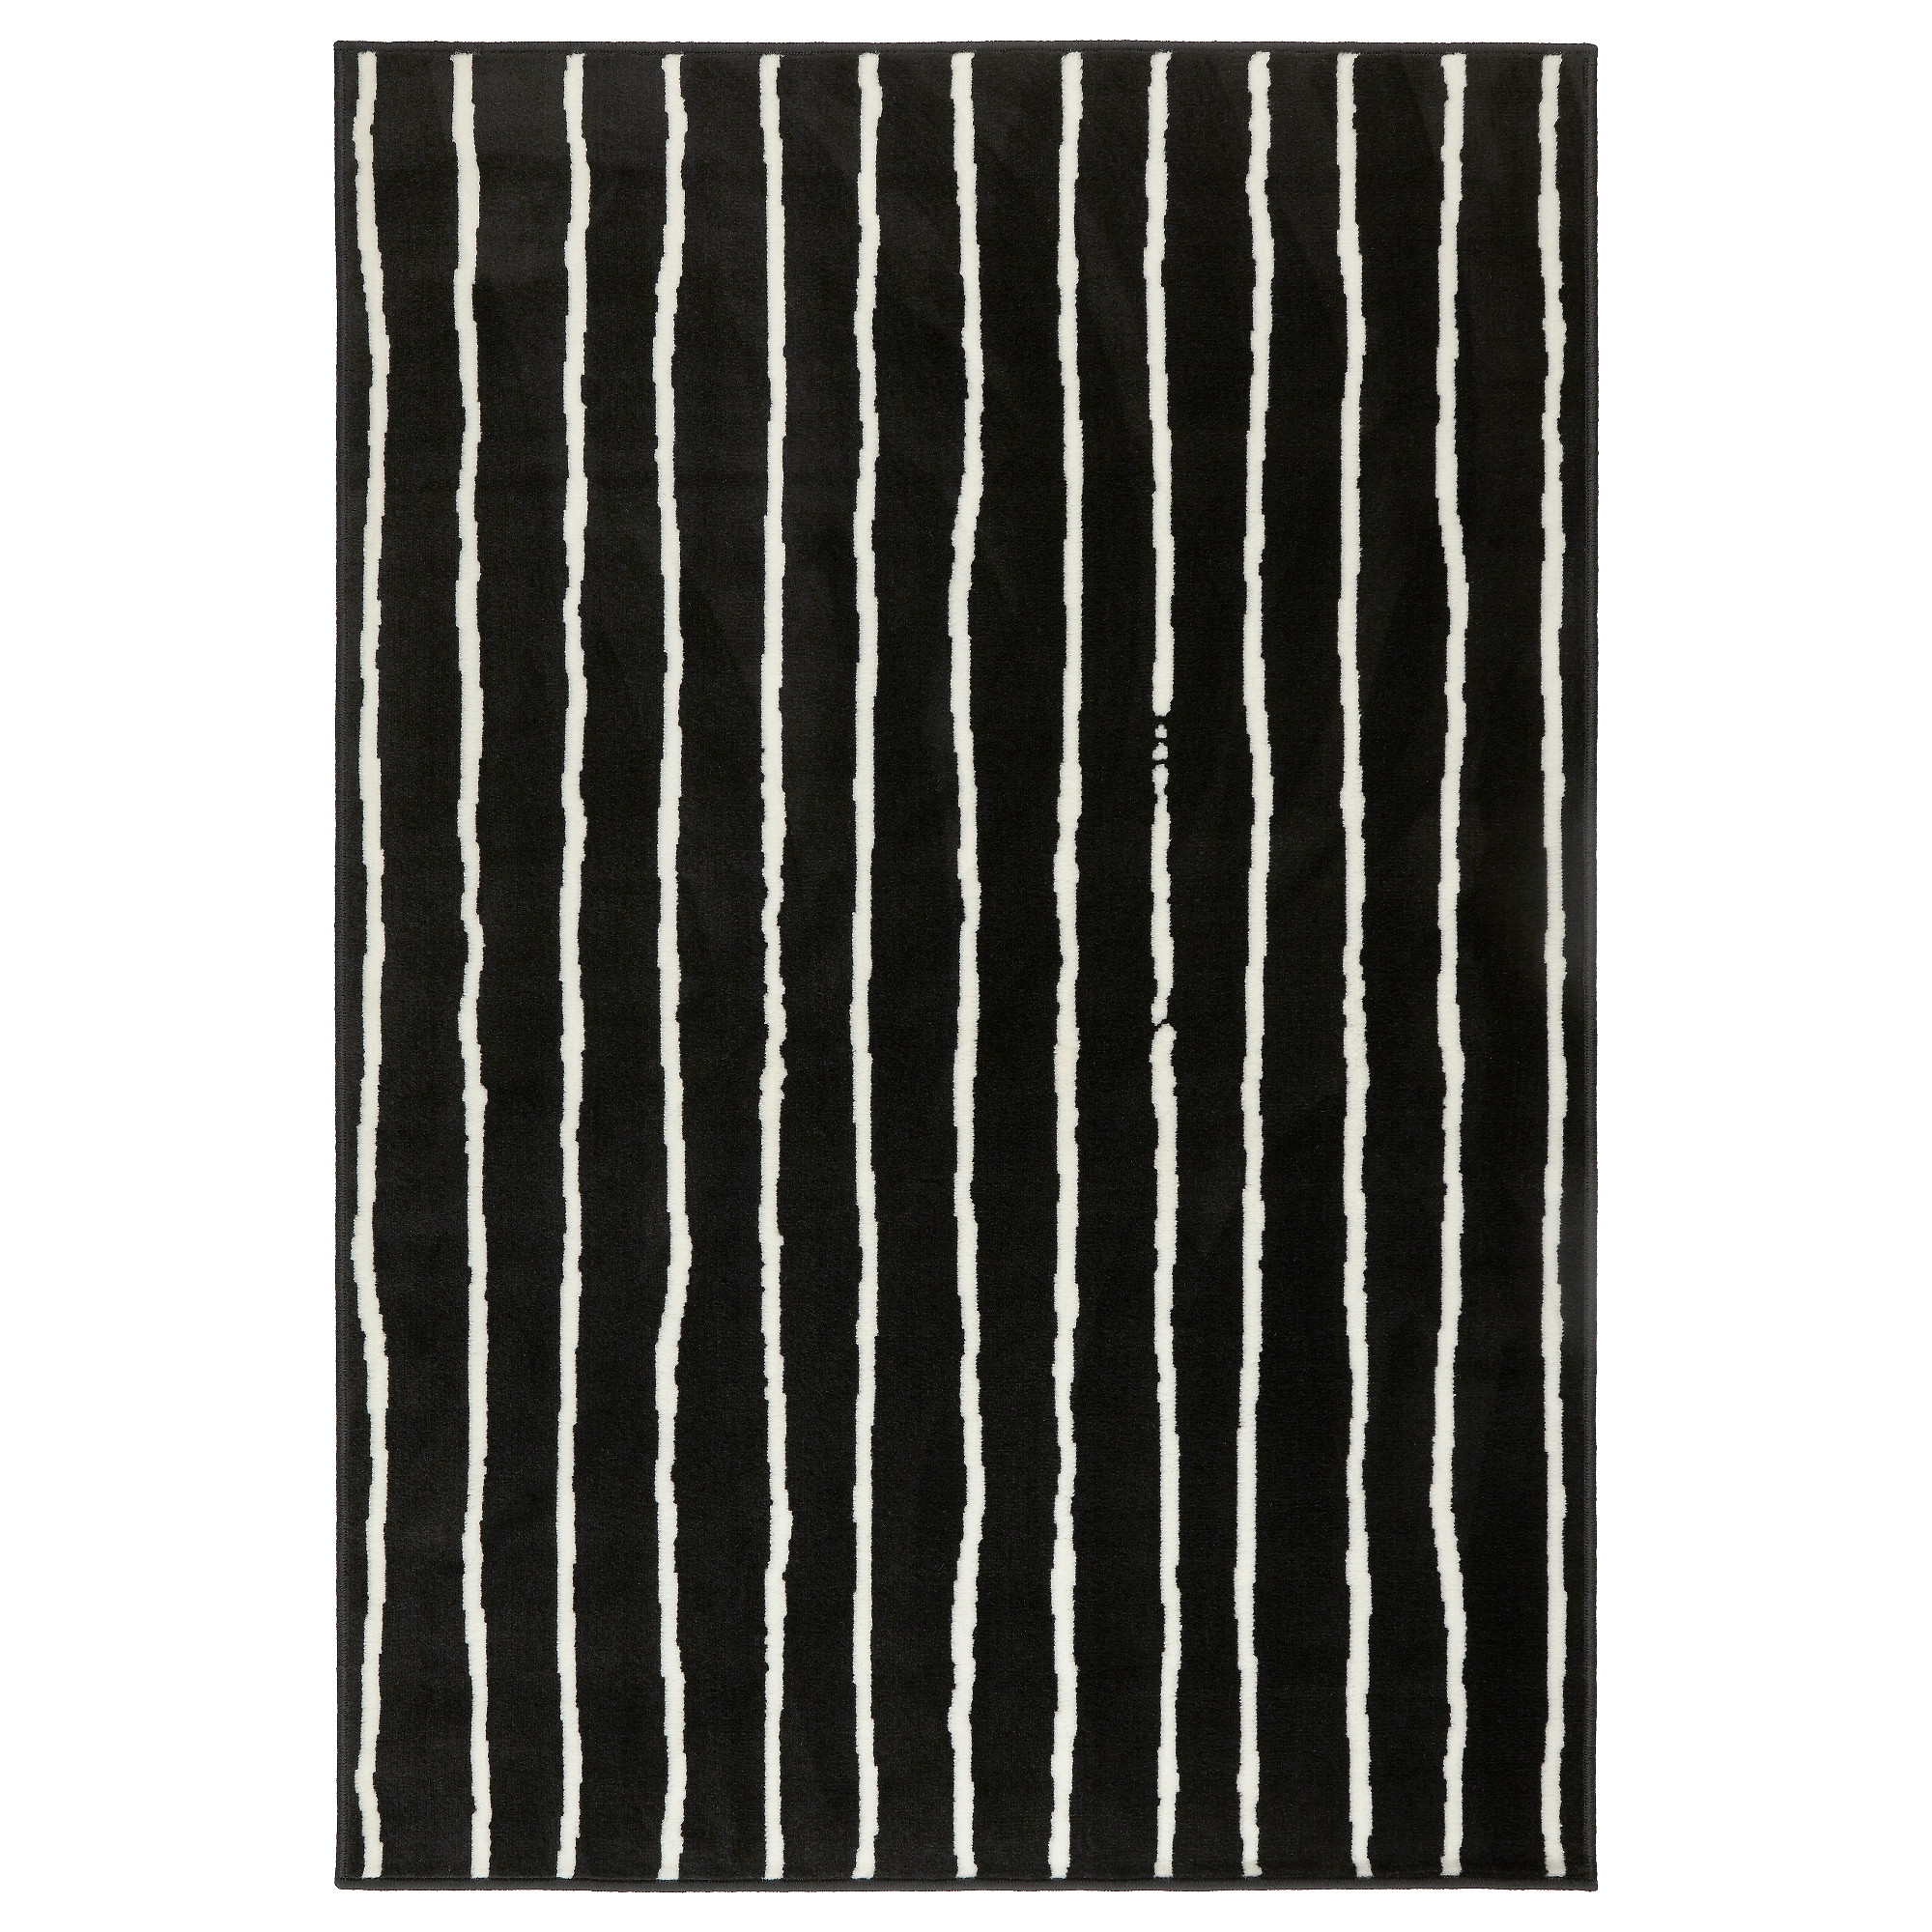 floors cheap contemporary ikea area full decorating rug of trends white clearance on target amazon living hardwood with wayfair adum hampen size room rugs